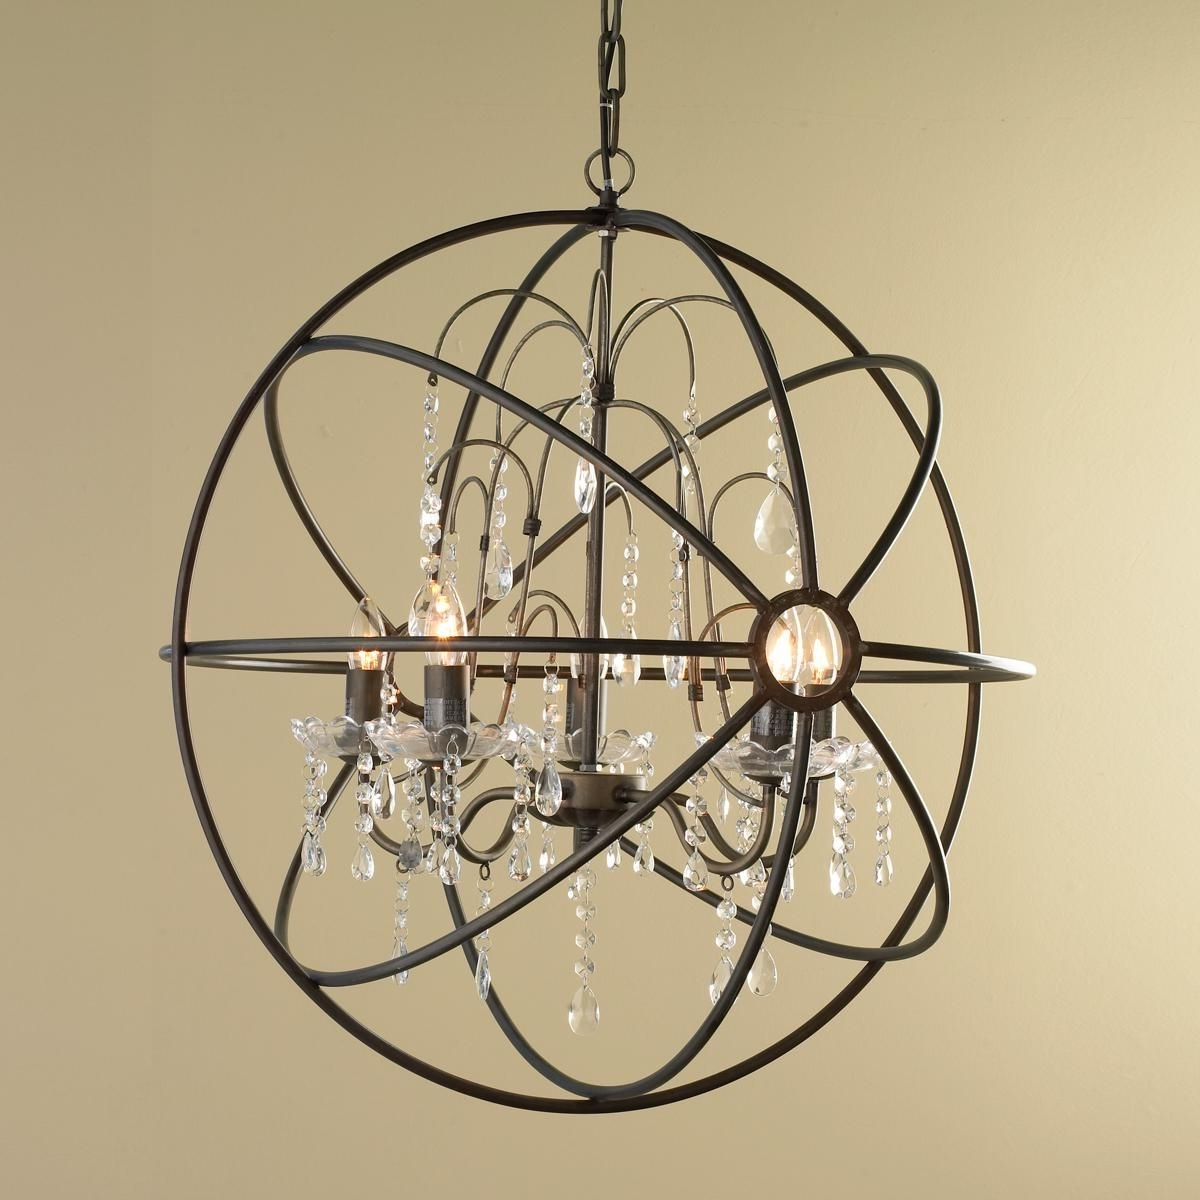 Crystal And Metal Orb Chandelier (View 4 of 15)